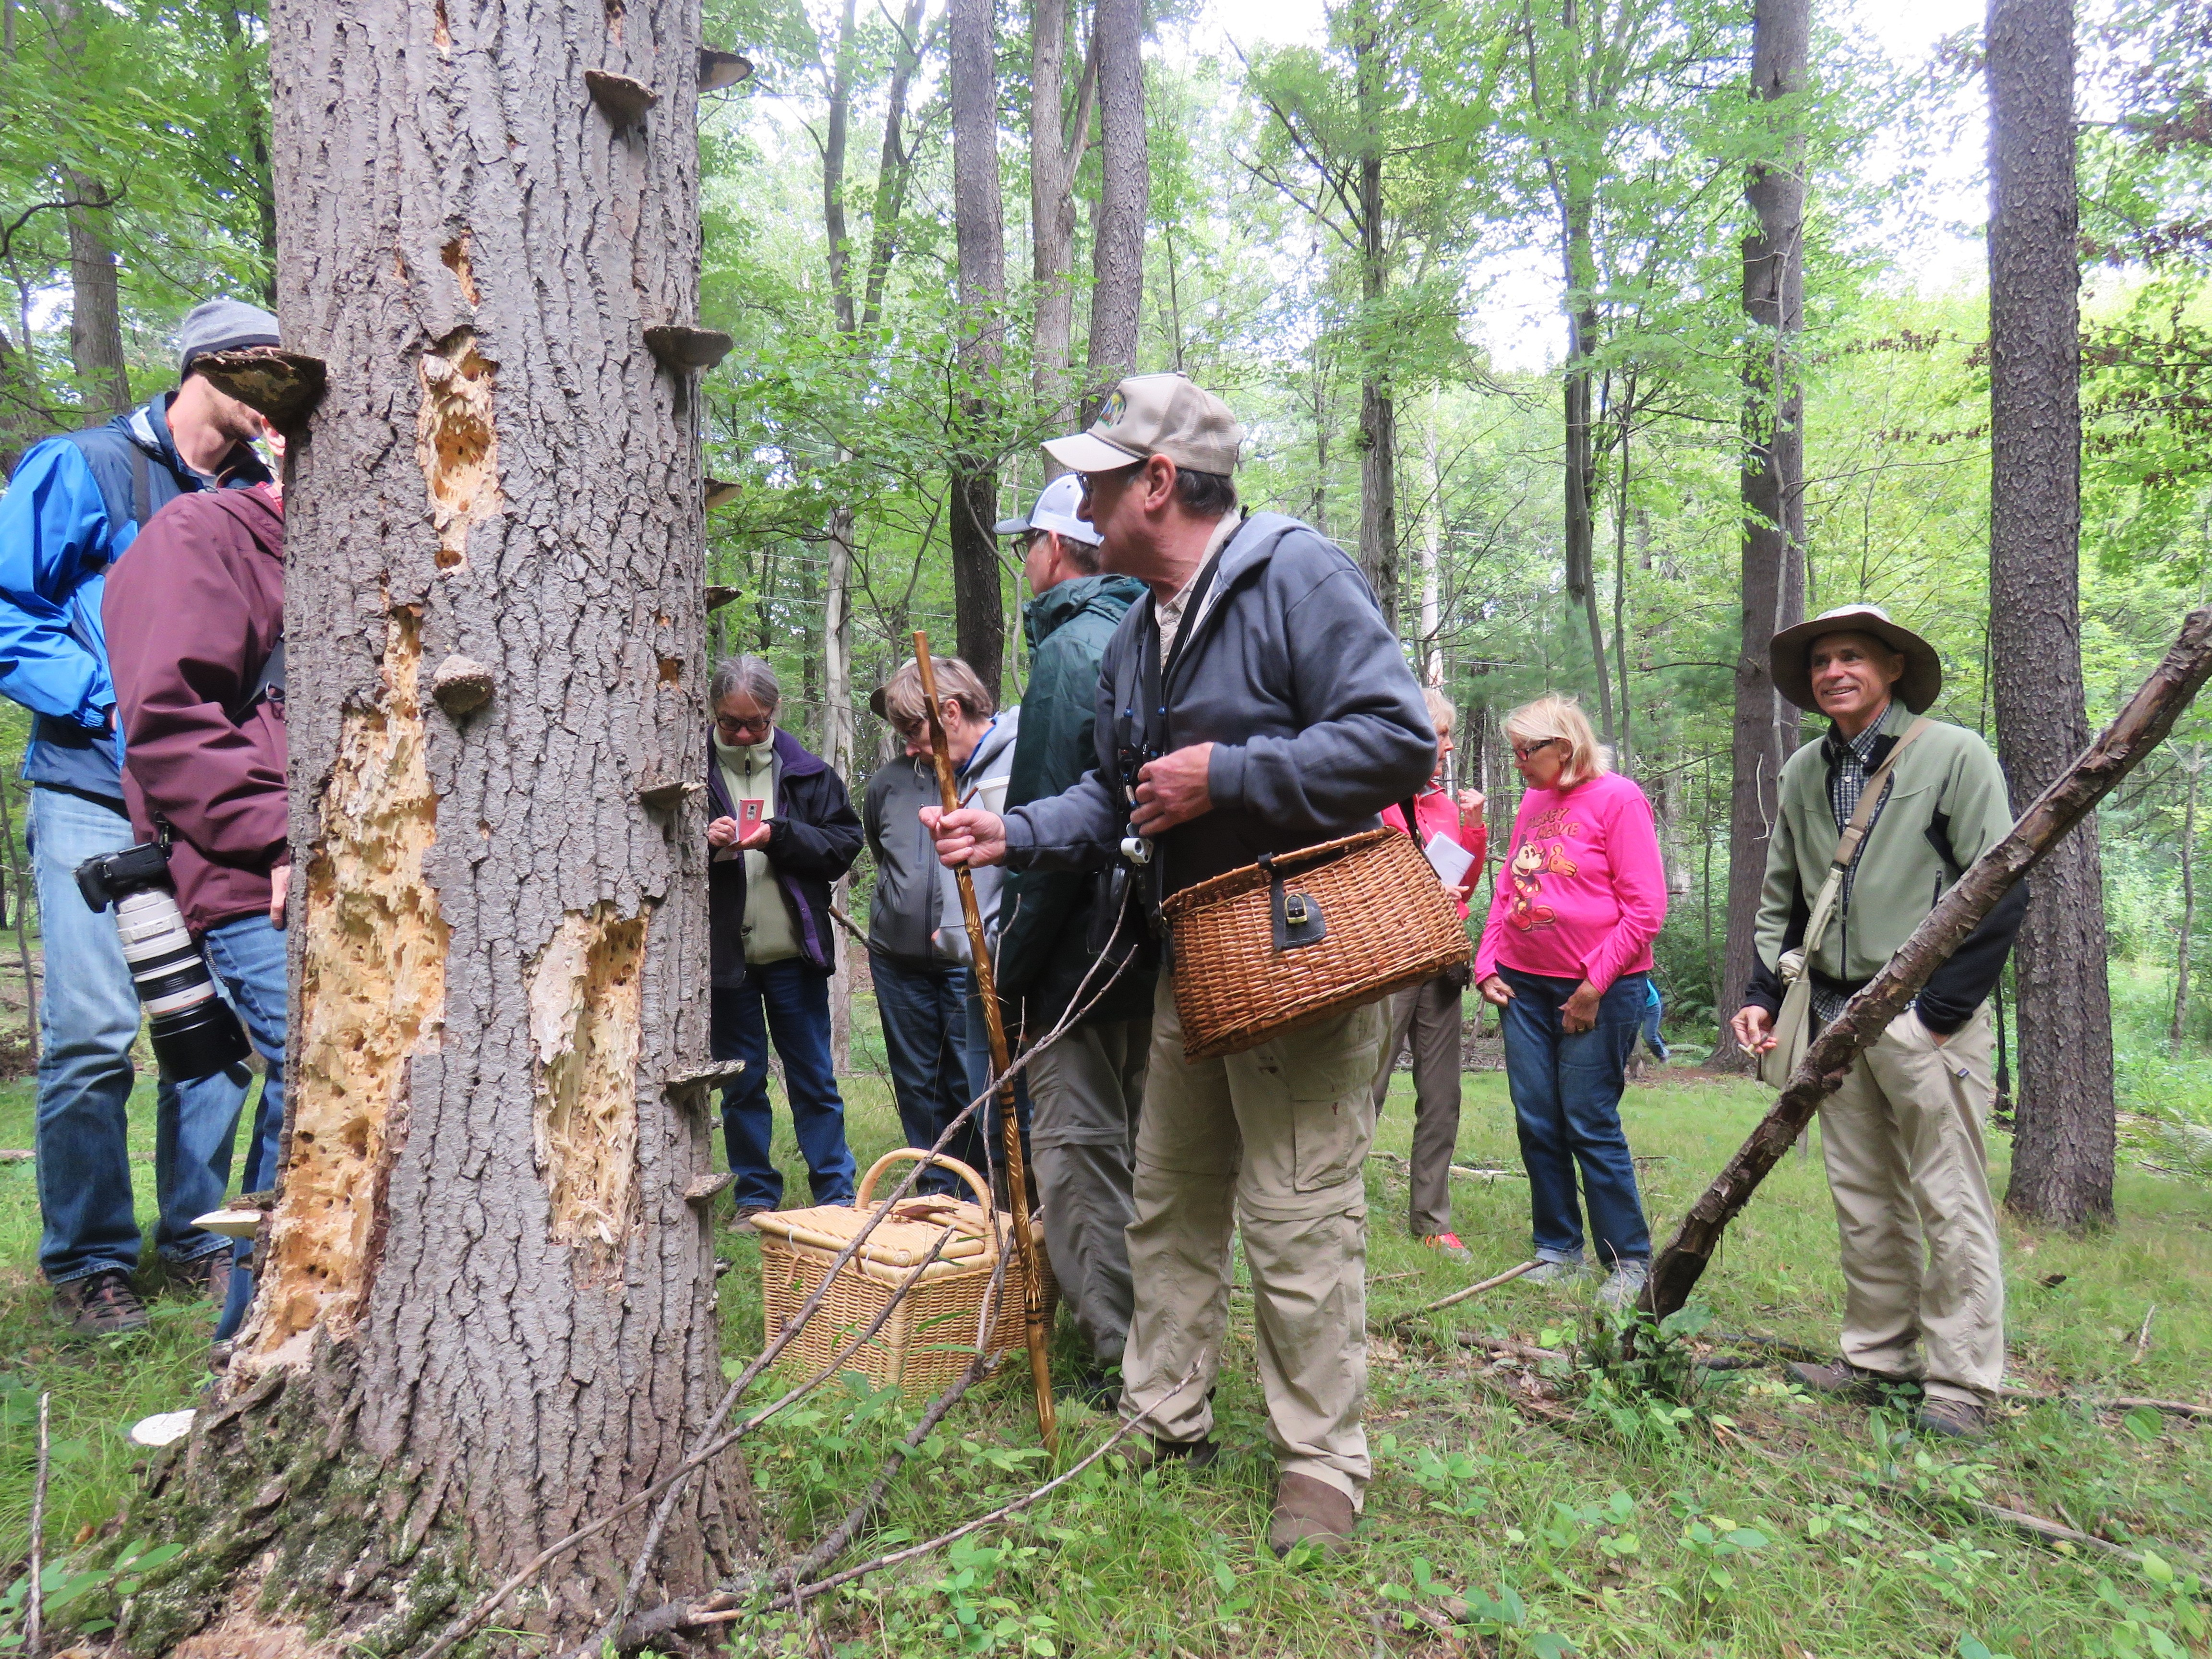 A group of mushroom foragers gather around a tree in the woods.